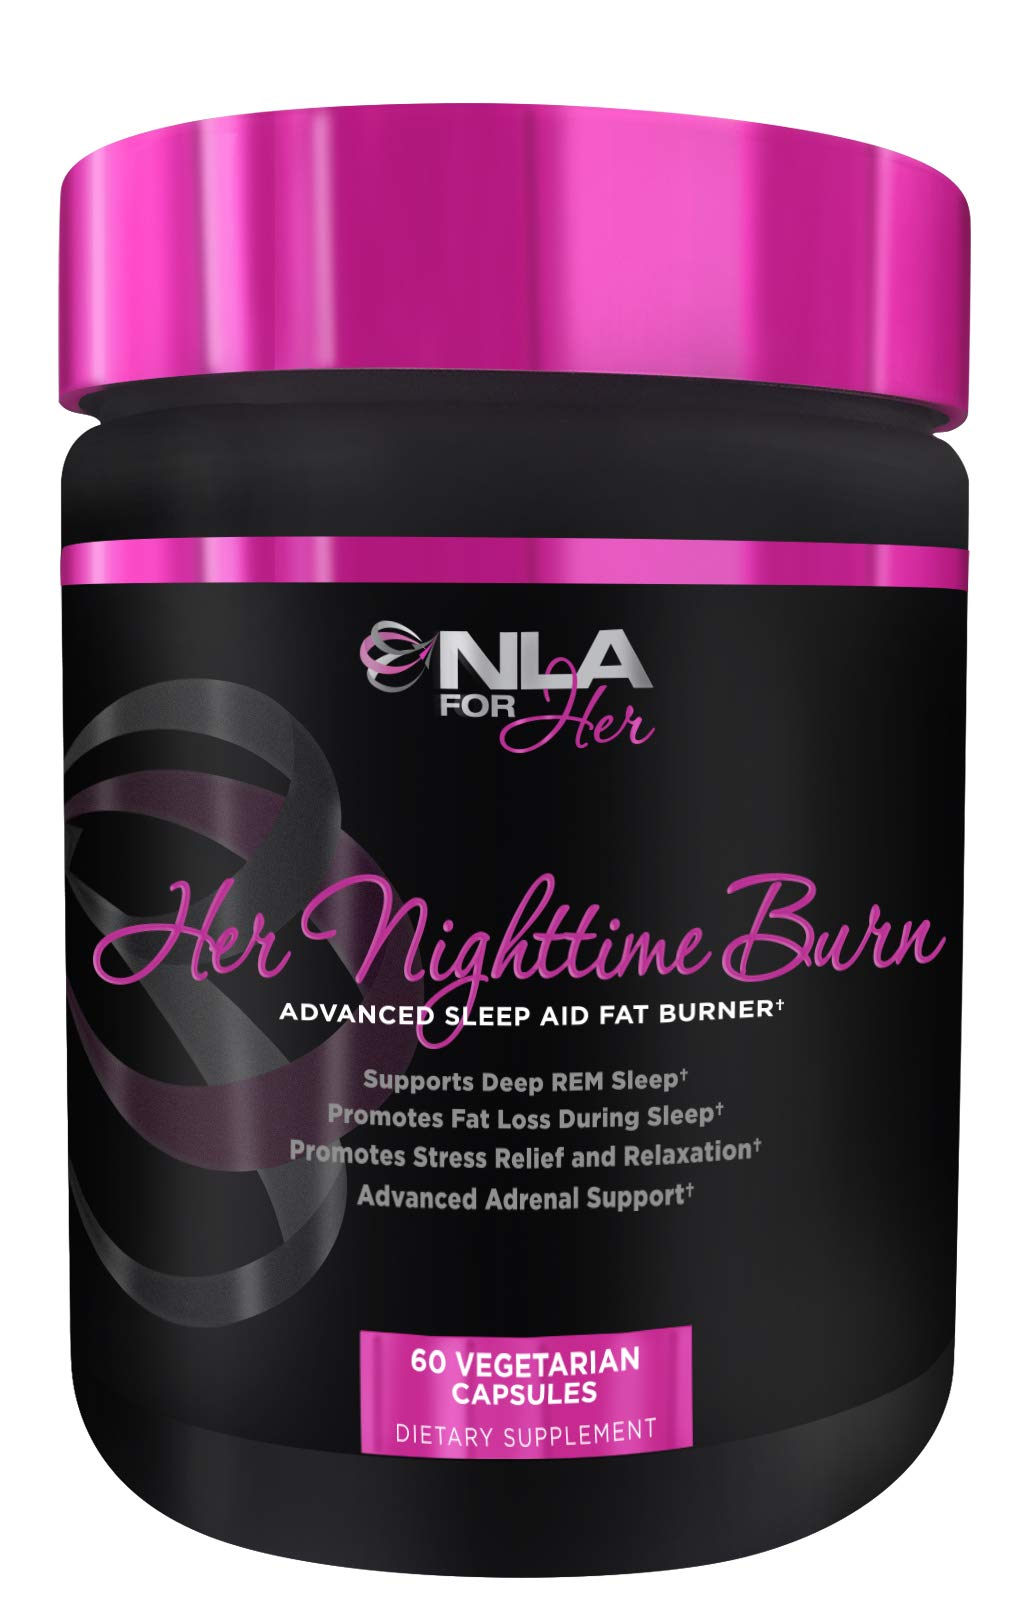 NLA for Her- Her Nighttime Burn-Sleep Aid and Fat Burner for Women-Promotes Better Sleep, Relaxtion, Weight Loss, and Stress Relief- Melatonin, CLA, Ashwagandha, 5 HTP, Chamomile- 60 Veggie caps